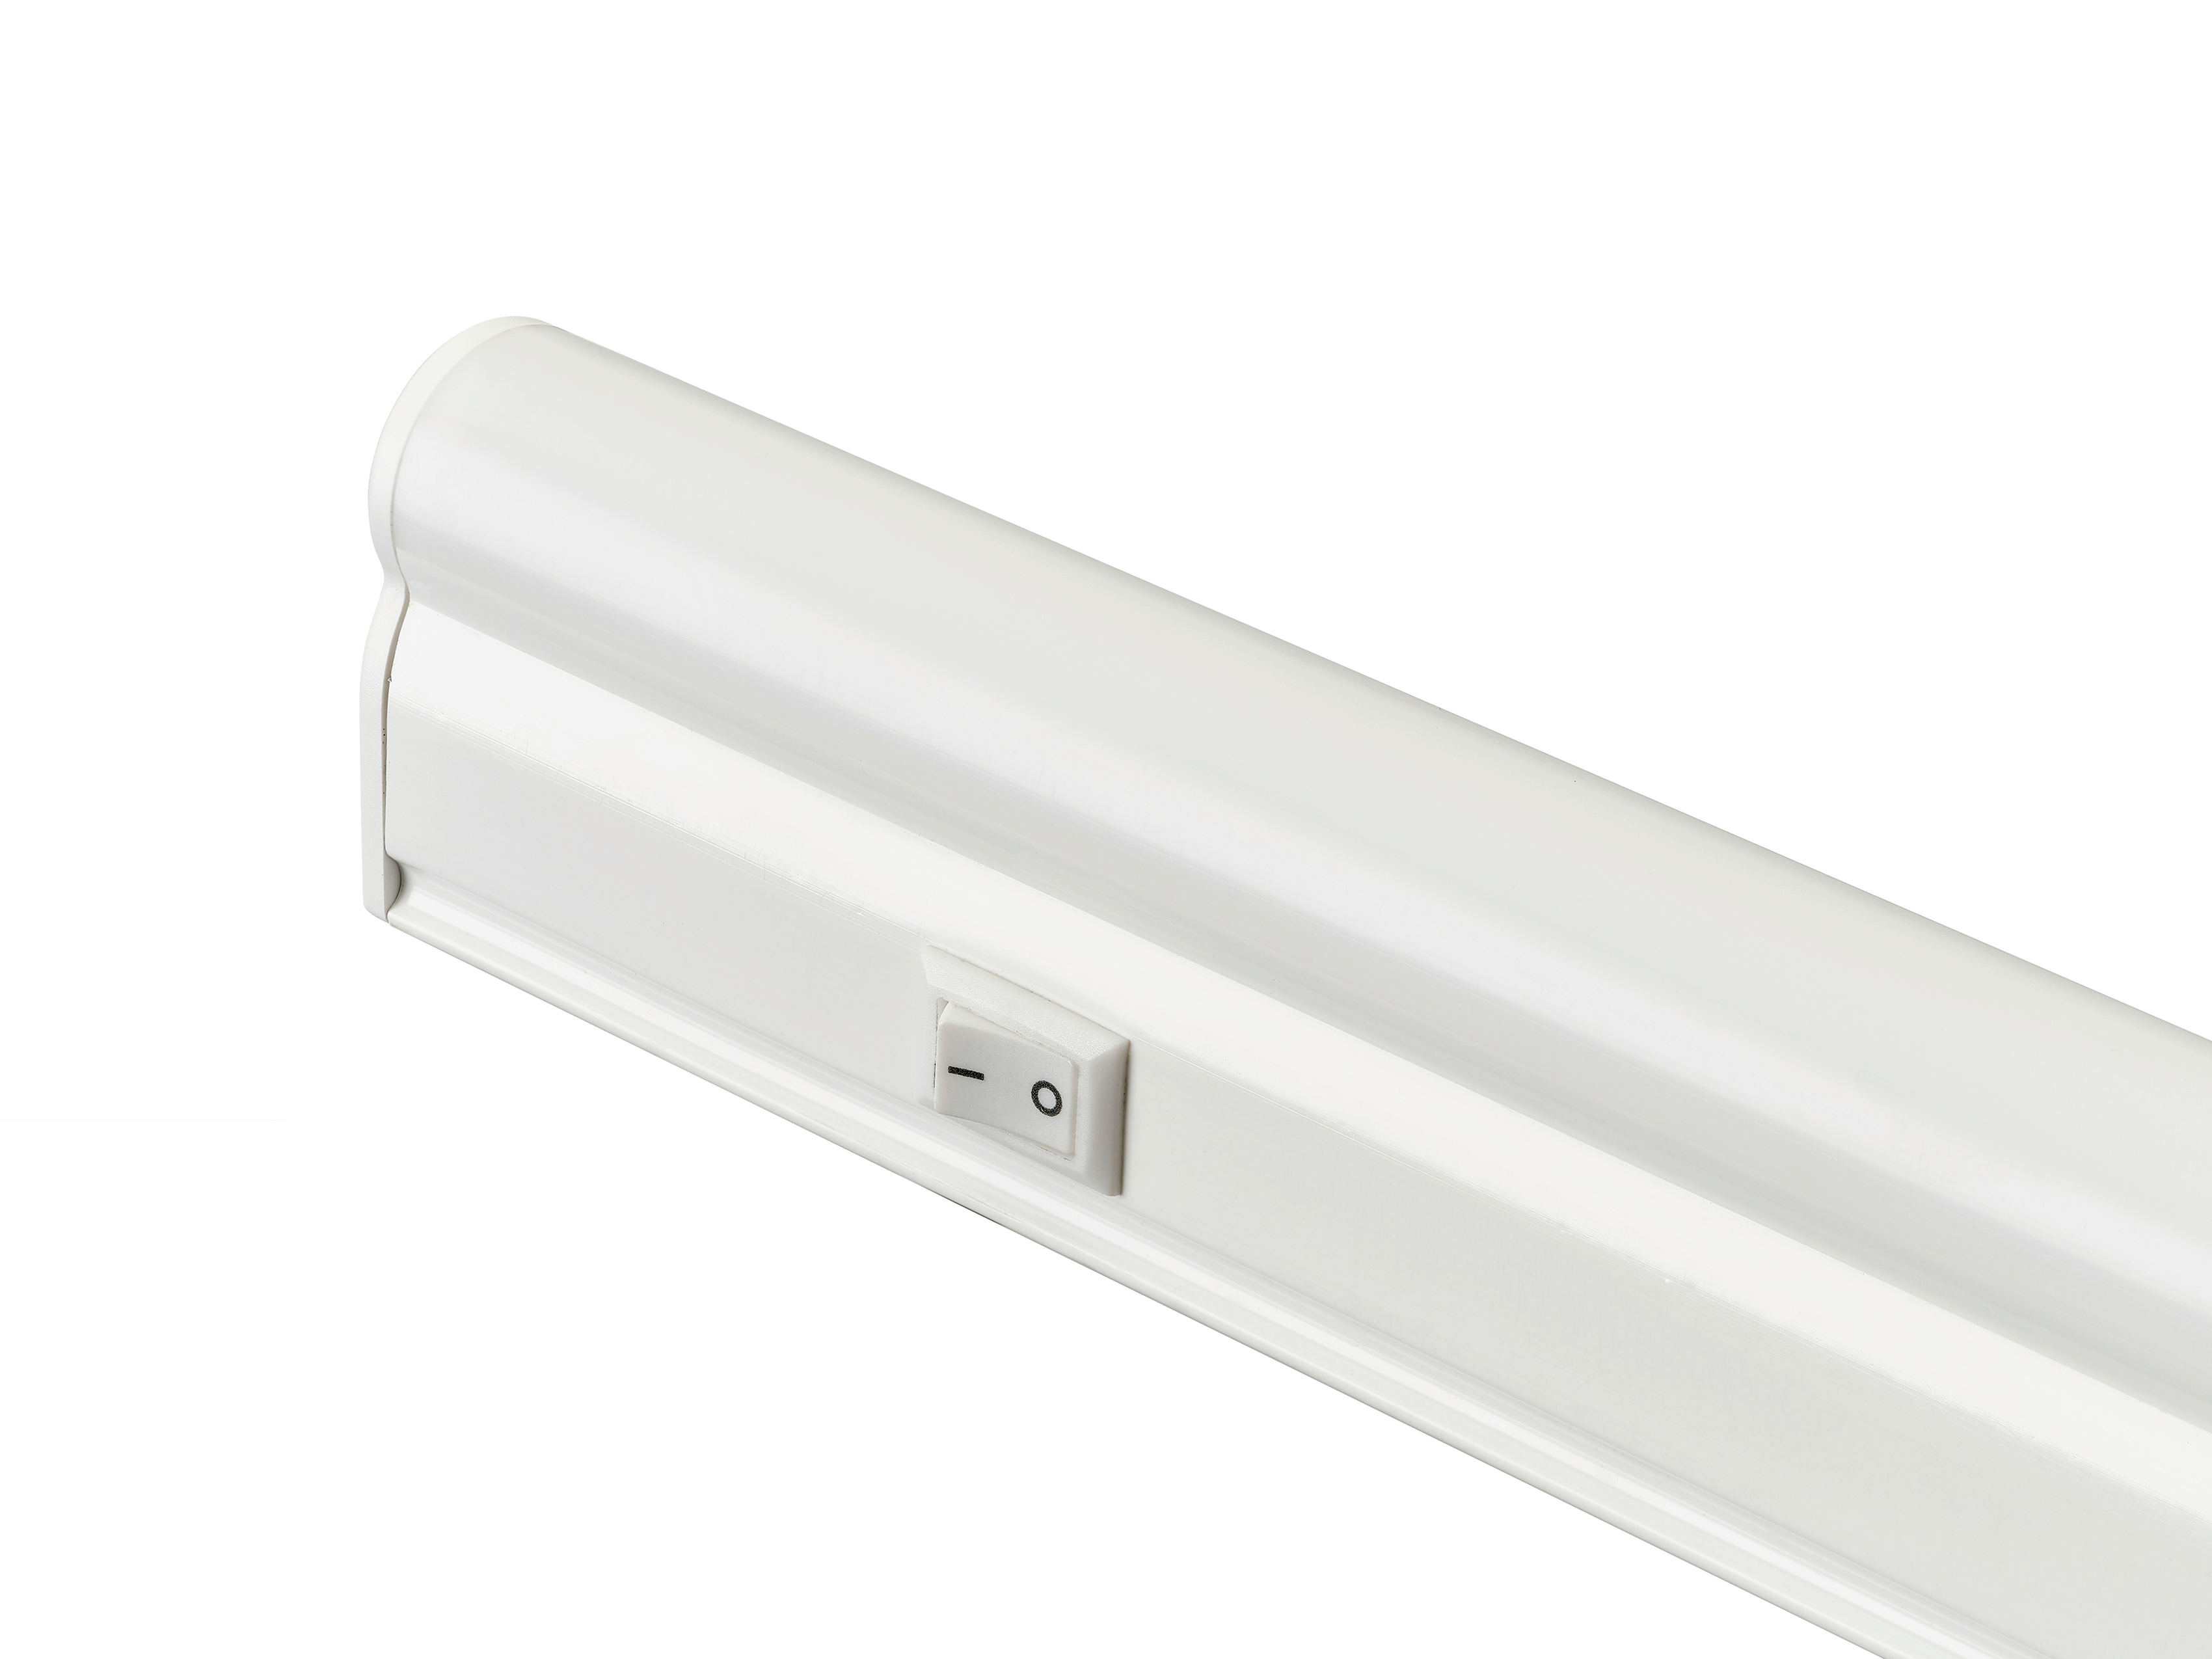 Sylvania PIPE LED under cabinet light 7W cool white 600mm length Thumbnail 2